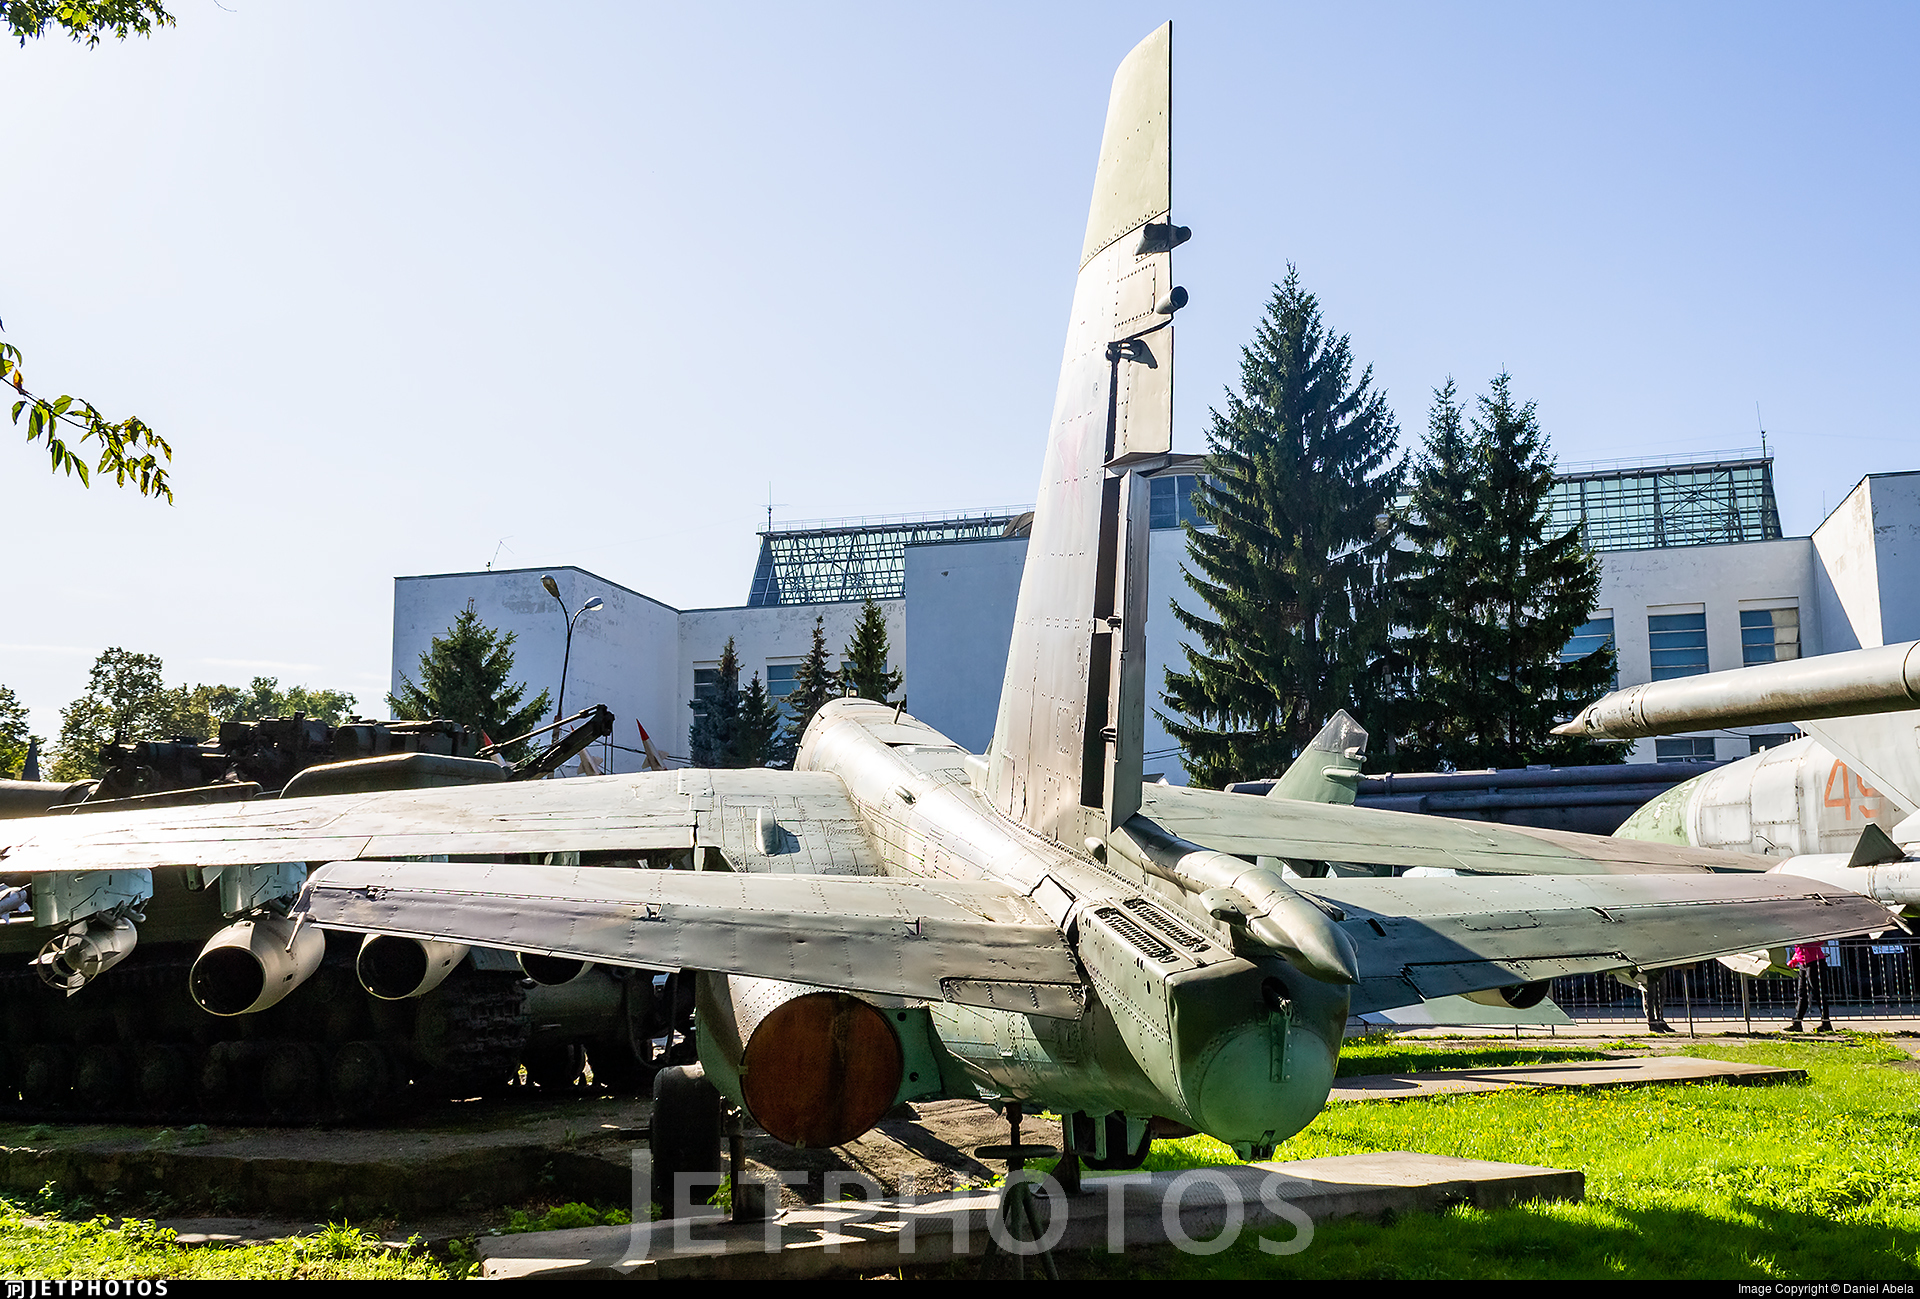 22 - Sukhoi Su-25 Frogfoot - Russia - Air Force